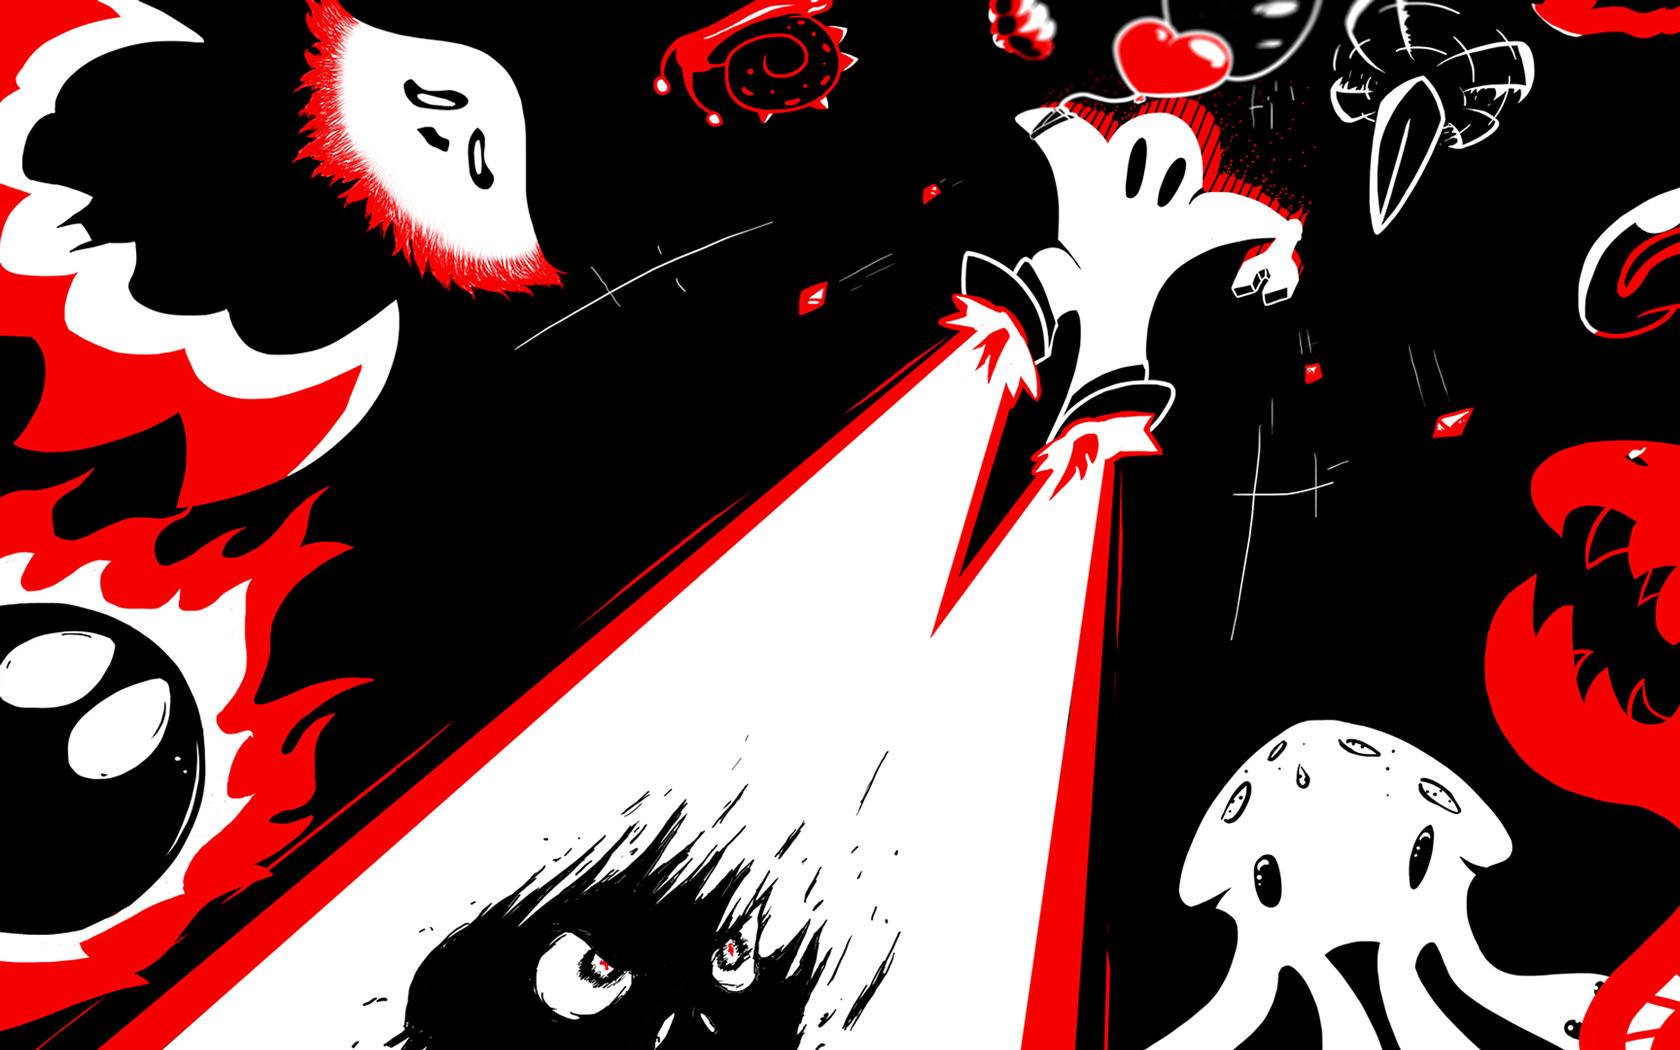 Free Downwell Wallpaper in 1680x1050